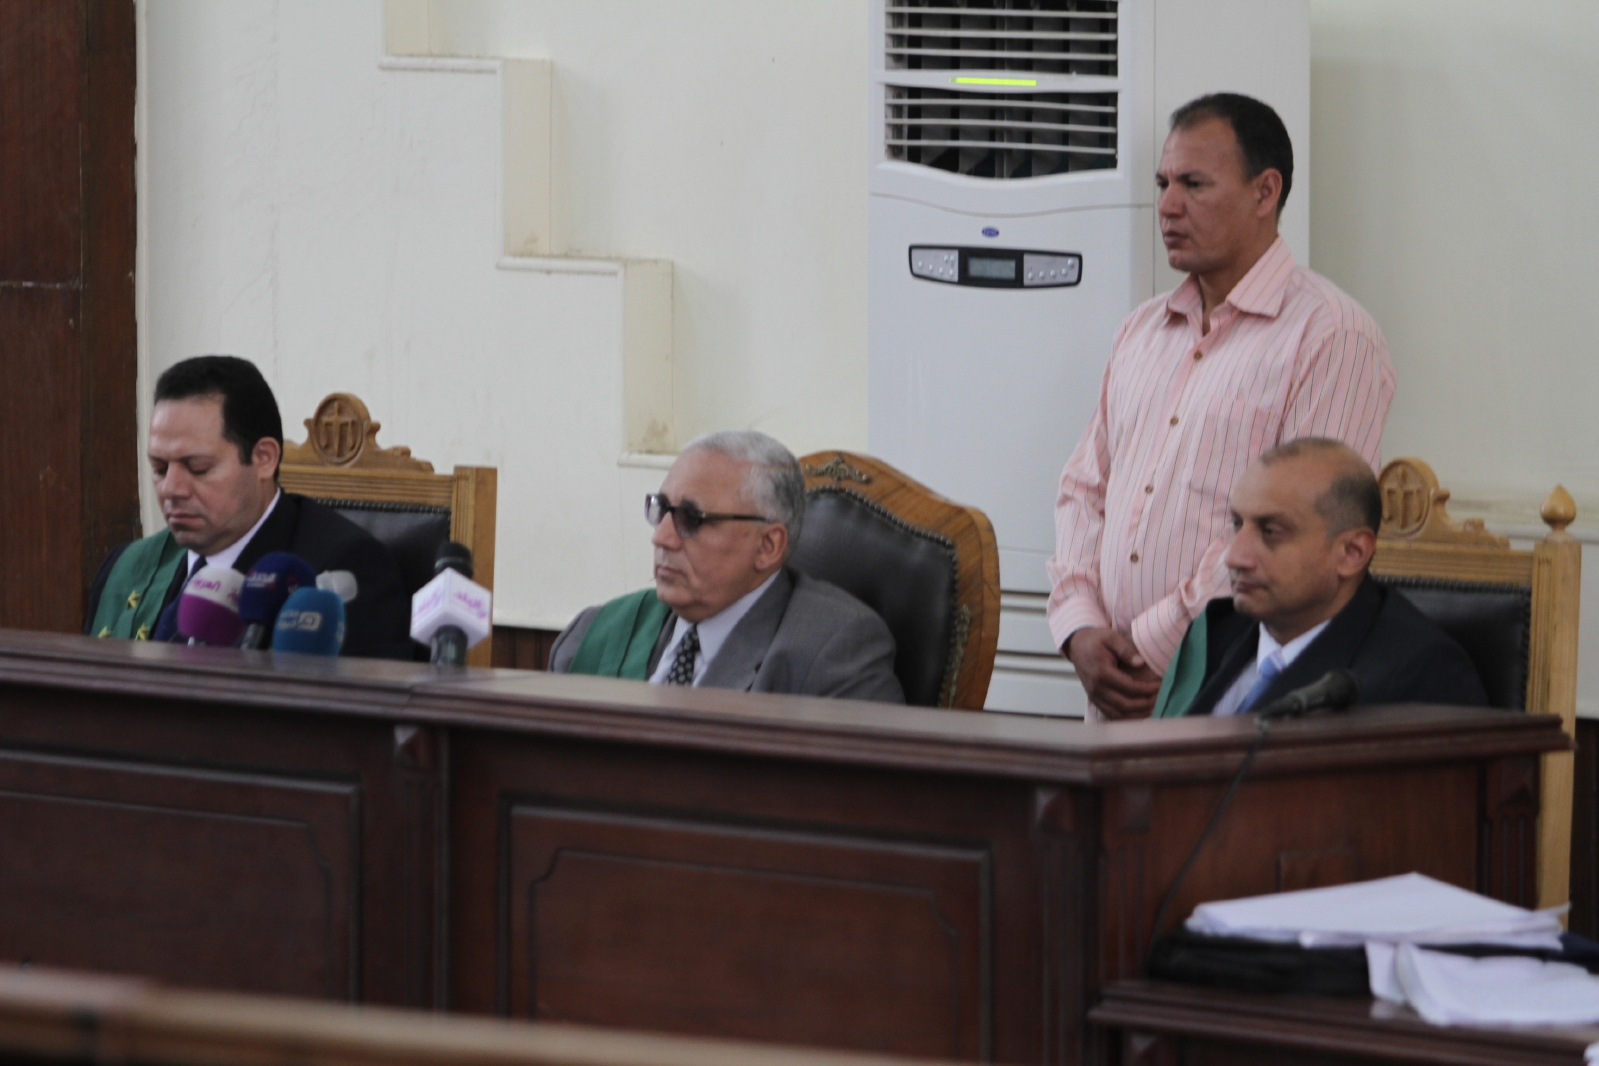 A Giza criminal court upheld Sunday a death sentence given to a man, named Anas Shahine, accused of belonging to and financing an illegal criminal cell, as well as collaborating with Hamas. (DNE File Photo)